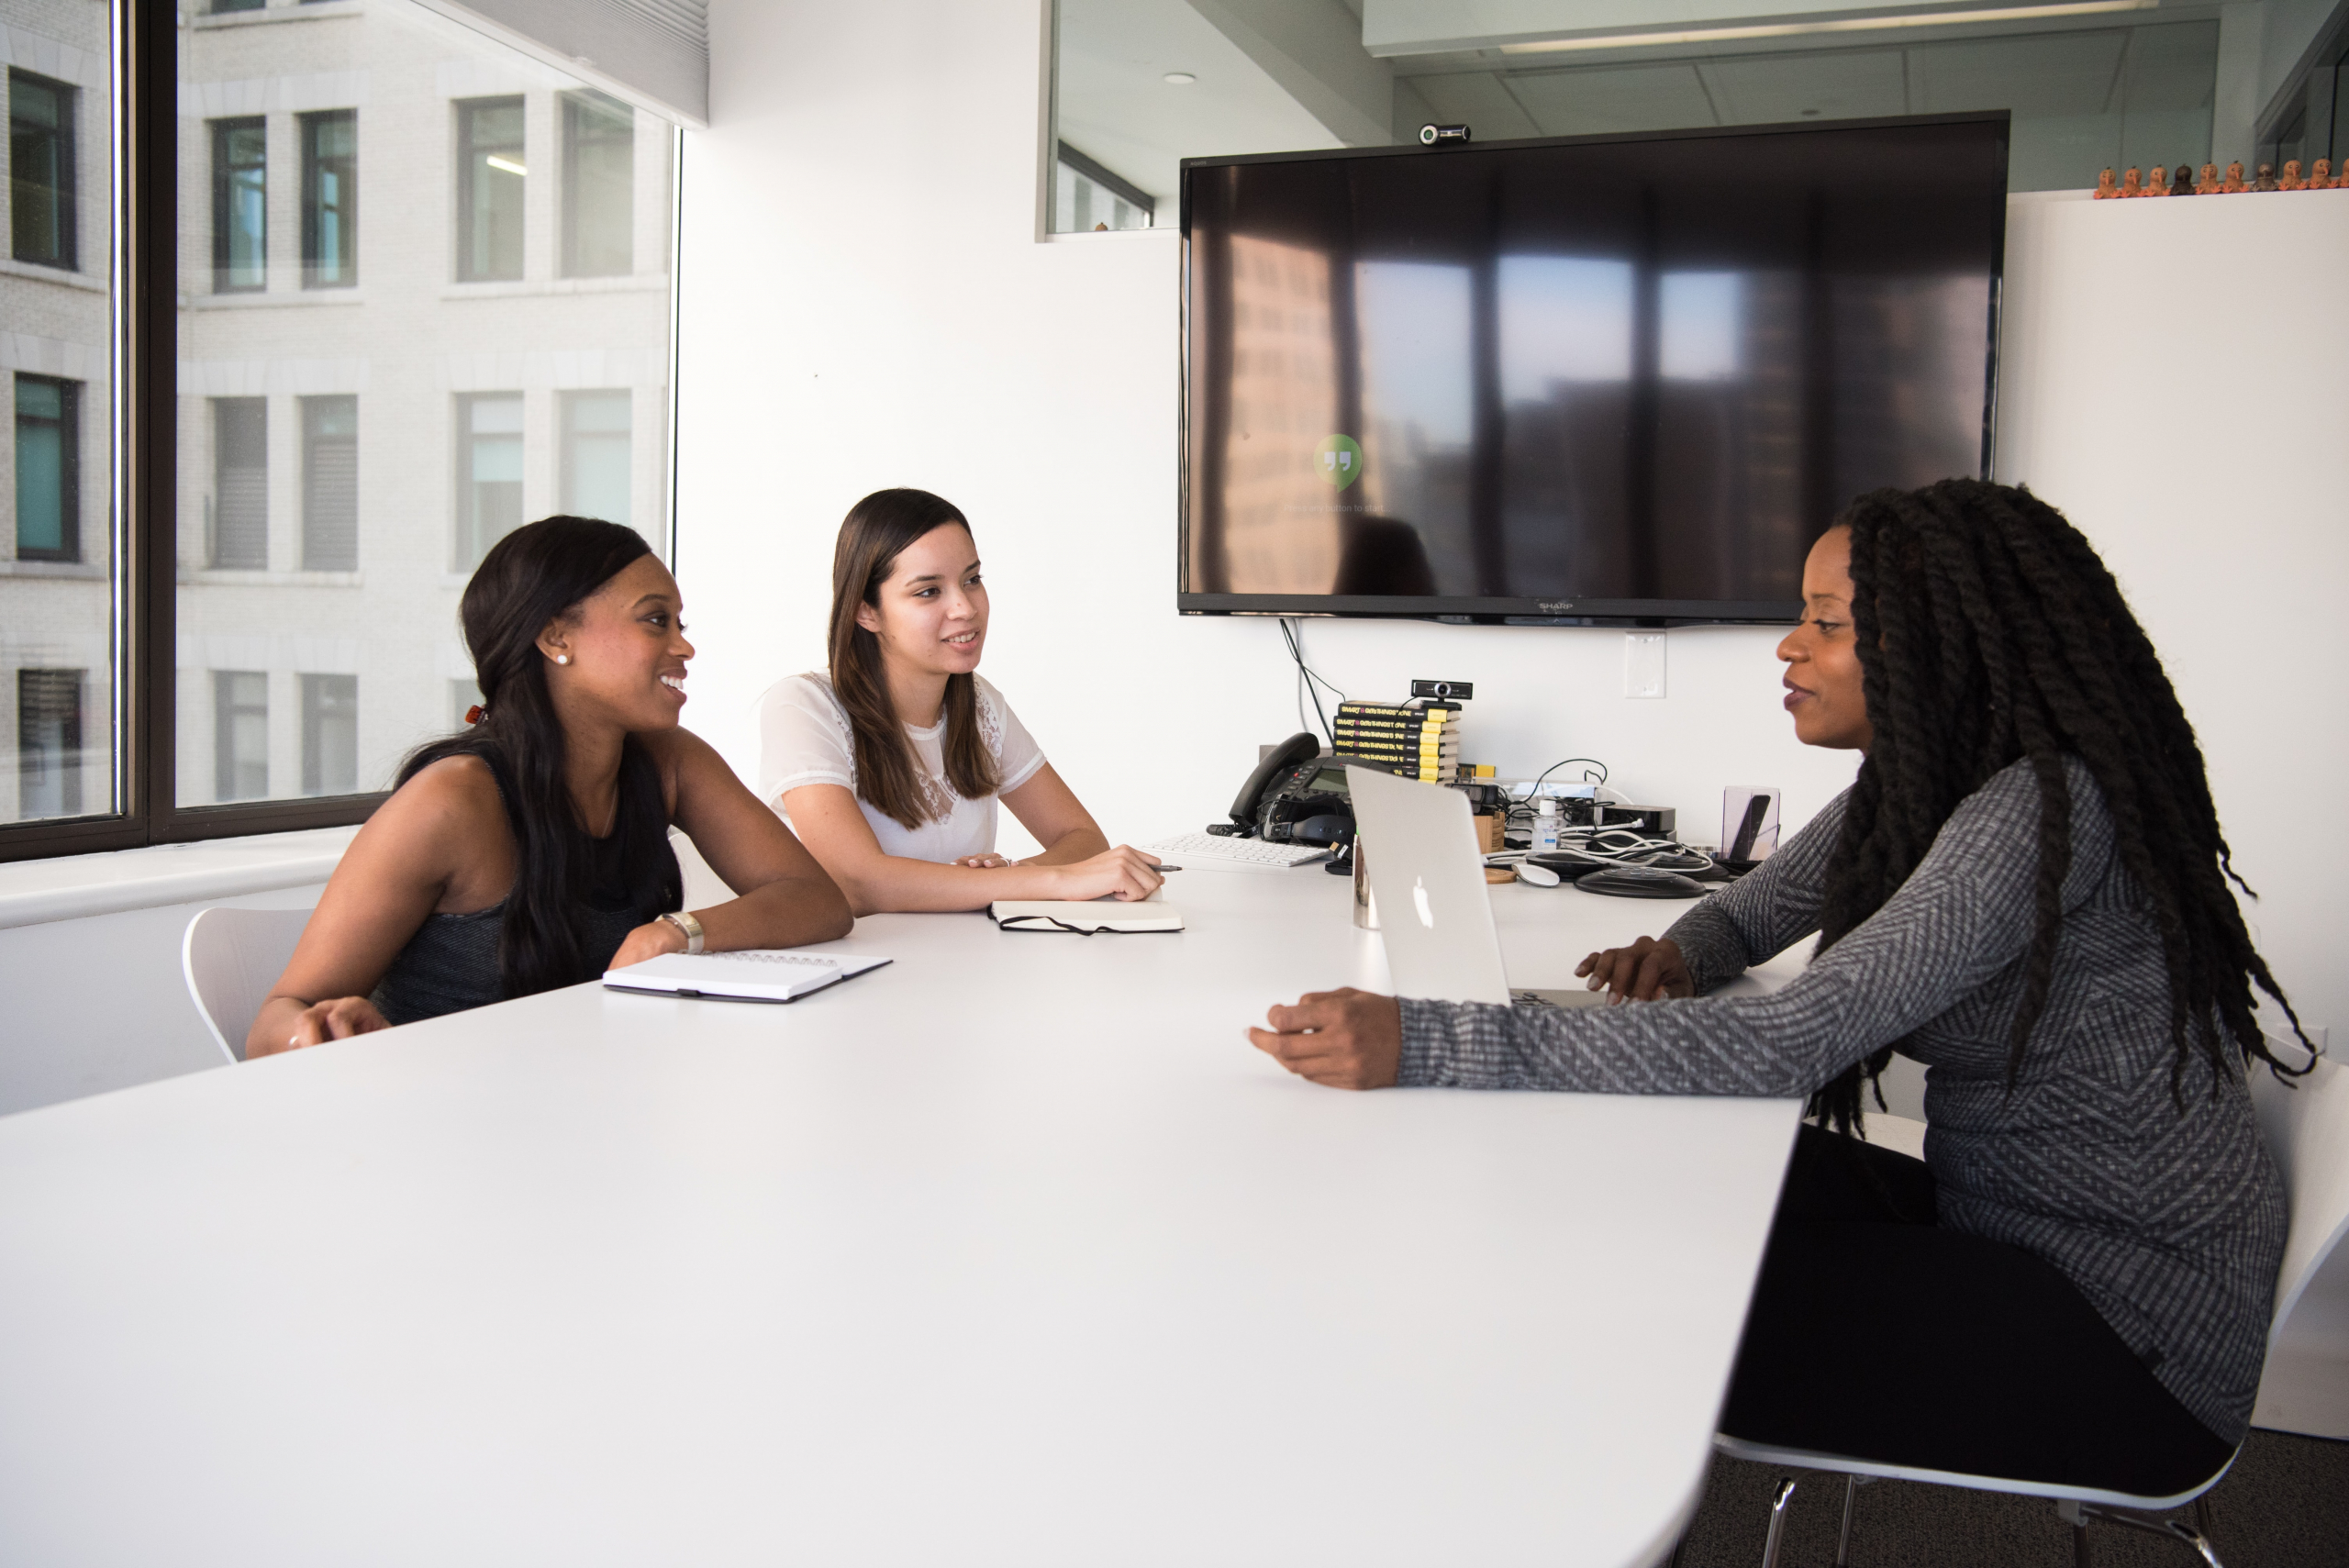 Picture of three women sitting around a white desk in a business setting